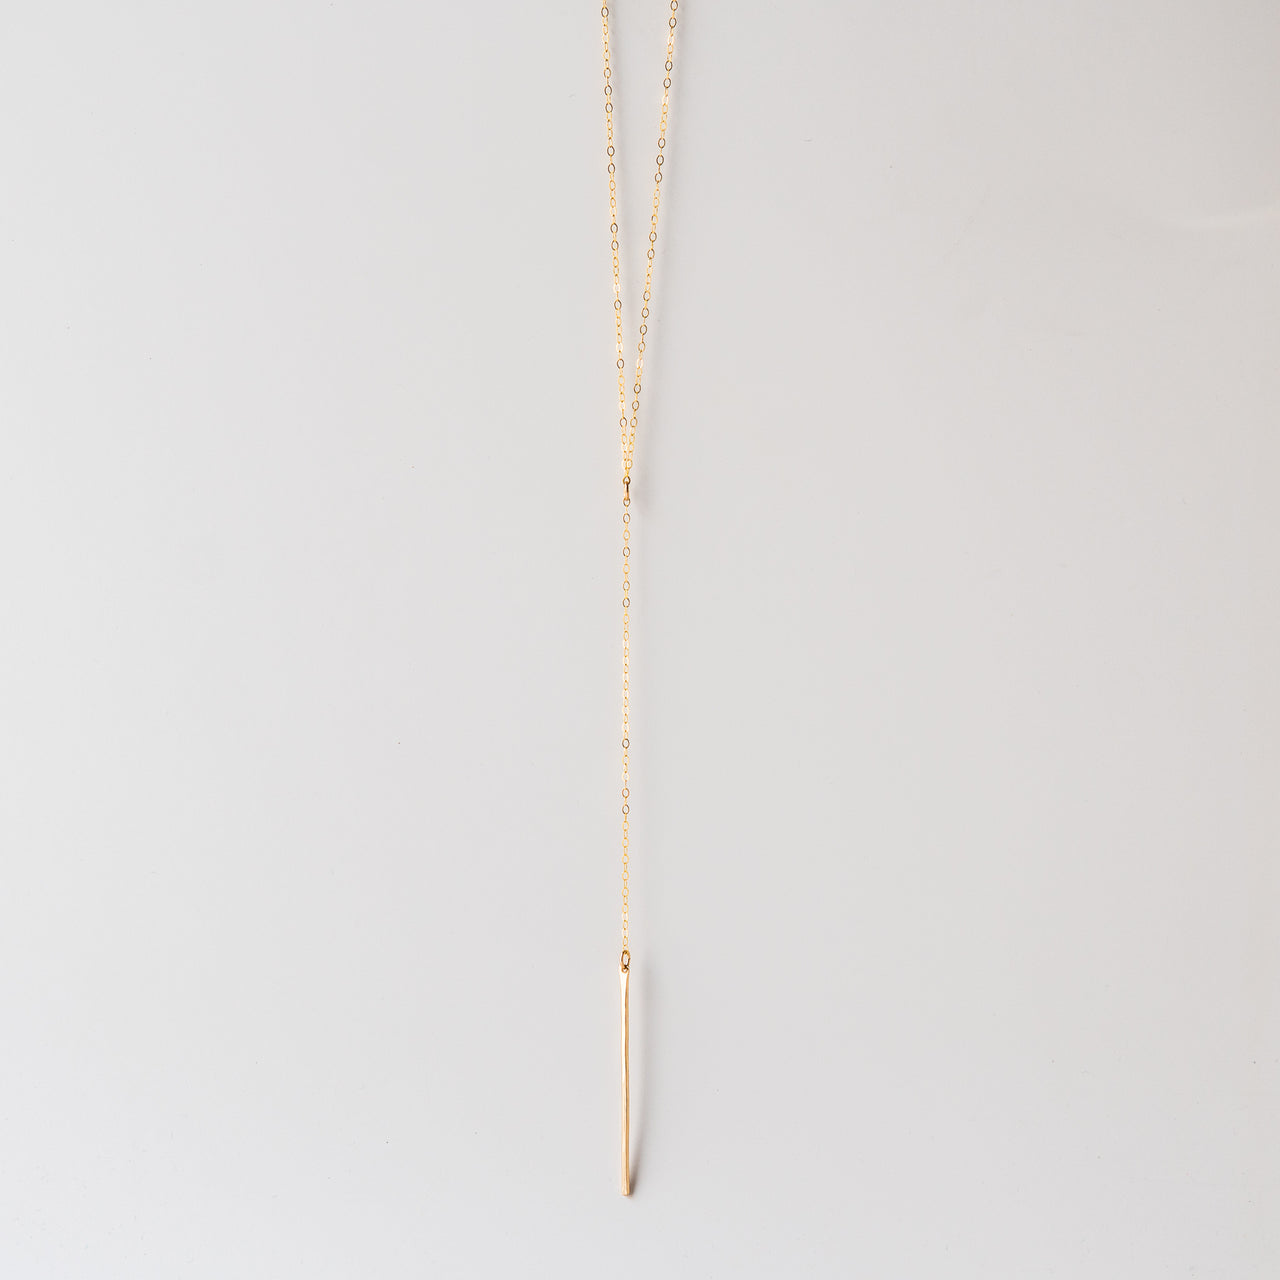 Lariat Necklace in Gold Fill